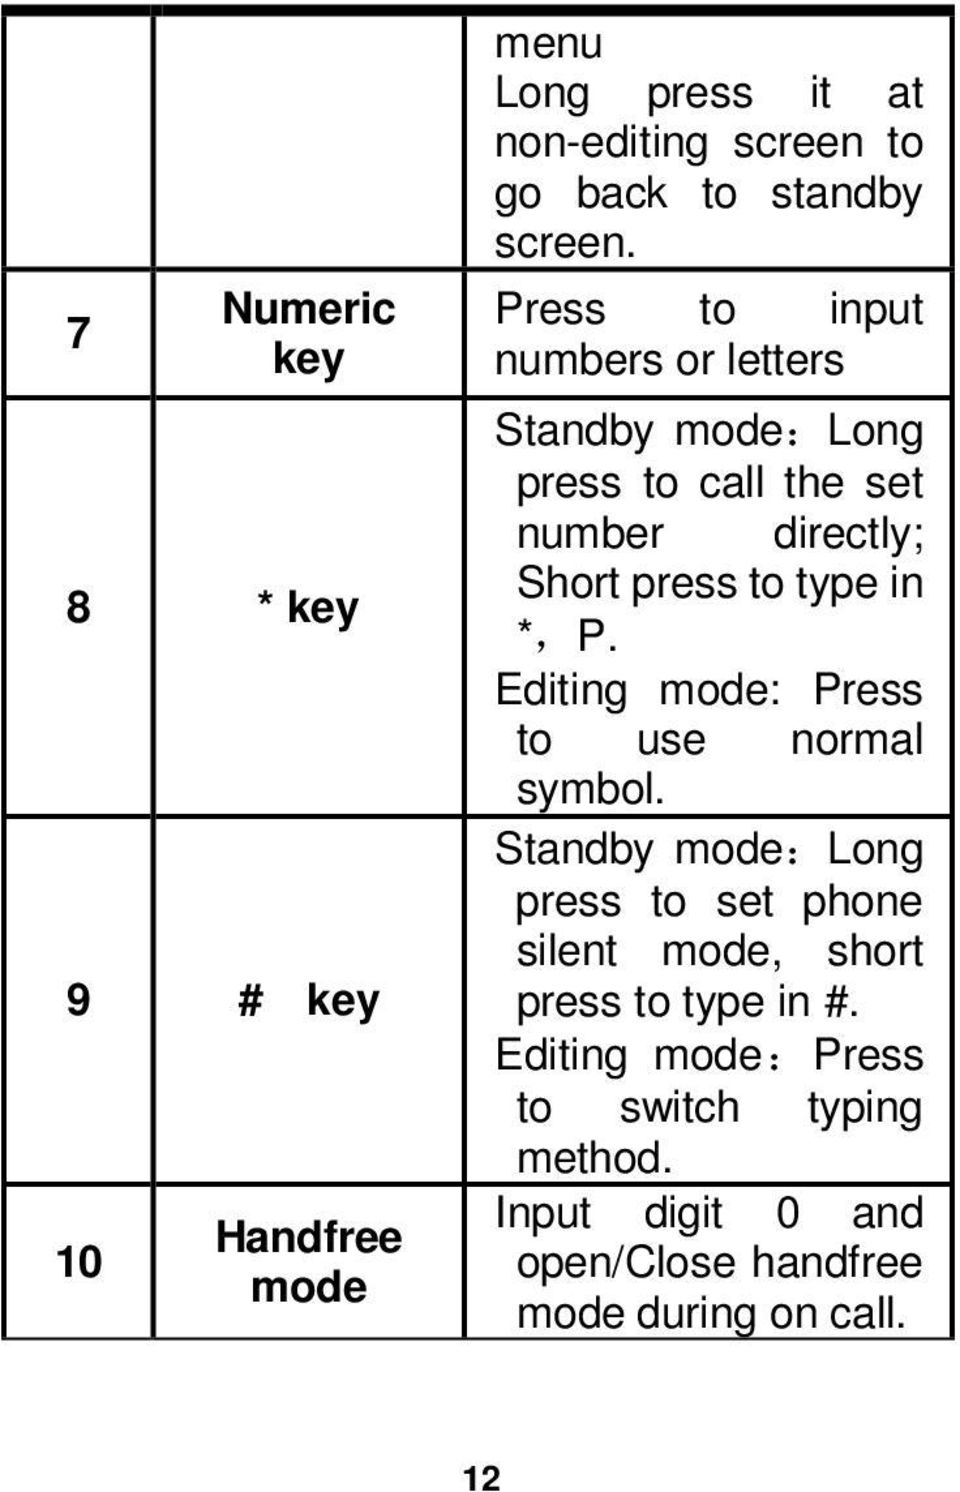 Press to input numbers or letters Standby mode:long press to call the set number directly; Short press to type in